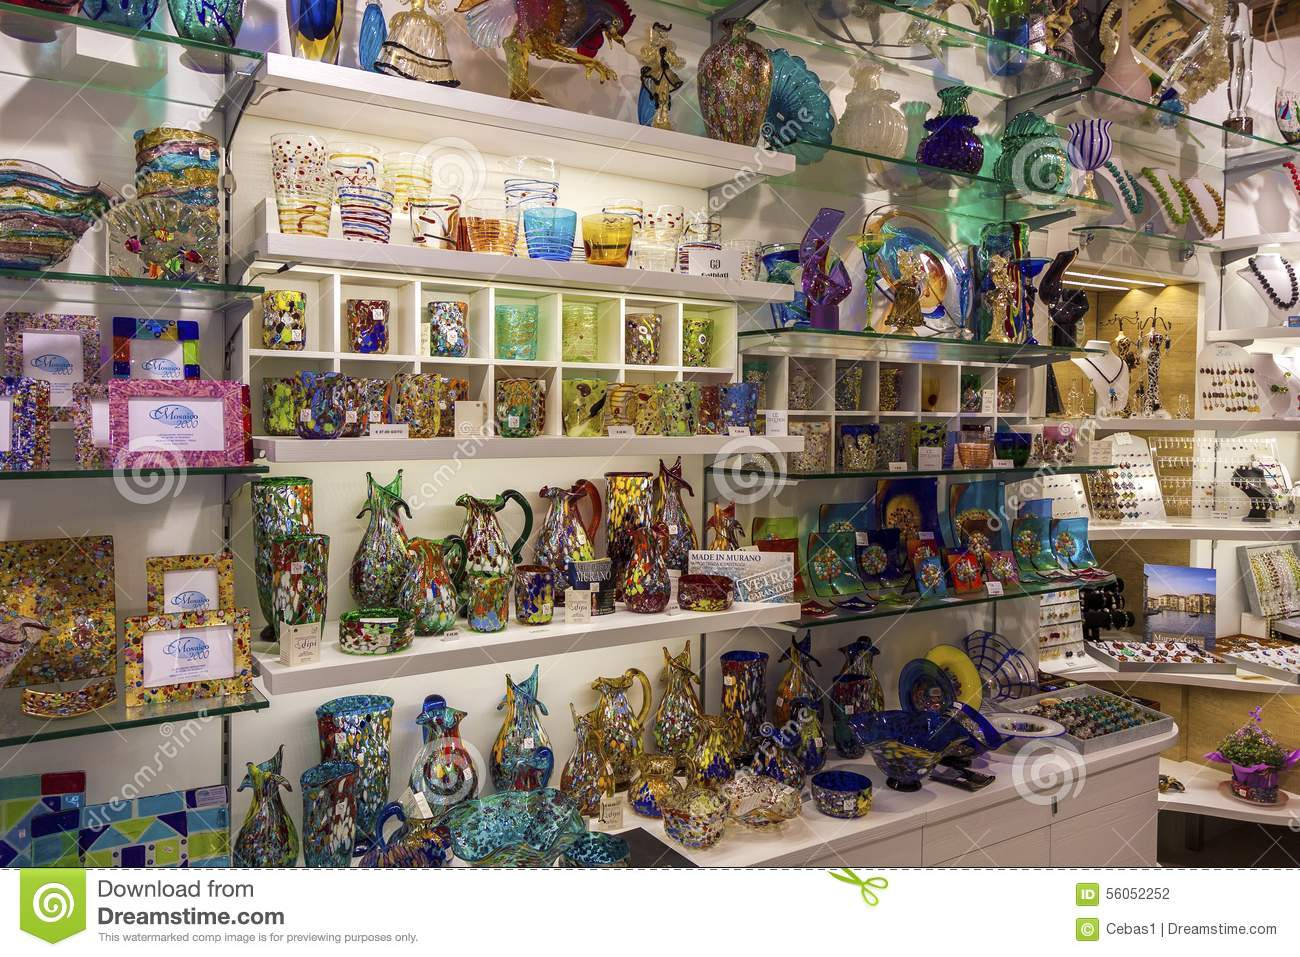 Editorial Photography Murano Glass Shop Venice Italy May Artworks Display Island Venice Image56052252 additionally Wat Rong Khun White Temple Thailand in addition World Architecture News Newsletter in addition Stock Photos Shoping Girls Illustt Image2140663 also Arabic Logo Design Kuwait  pany. on modern building design